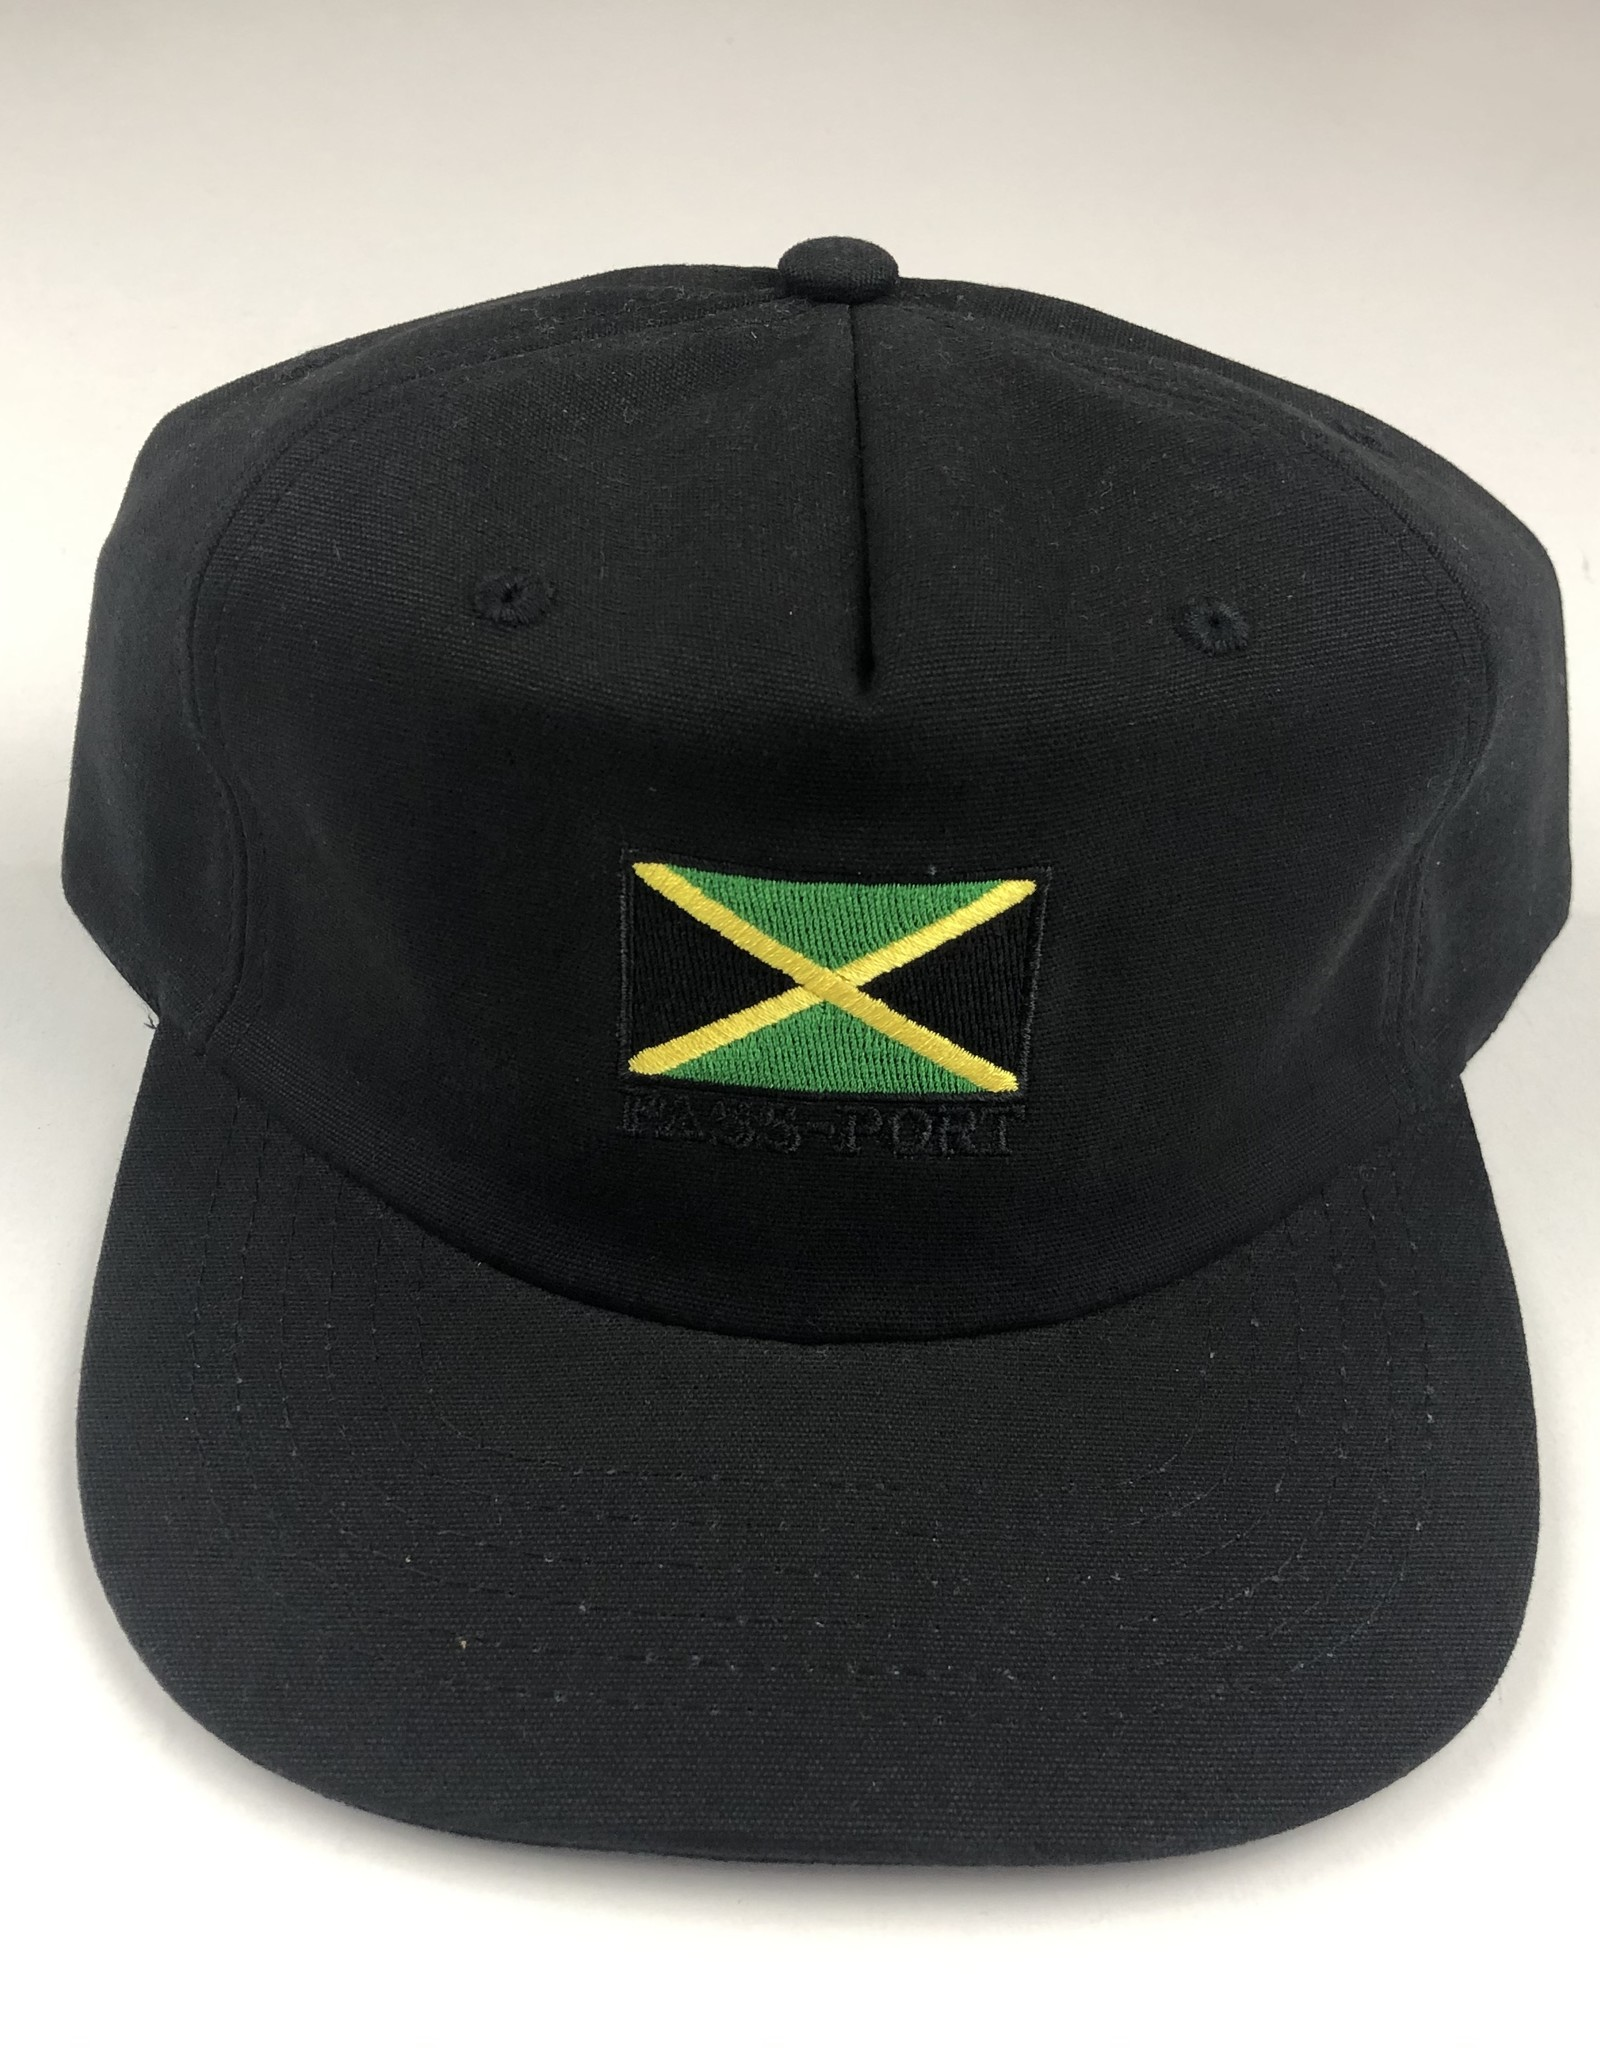 PASSPORT PASSPORT JAMAICA 5 PANEL HAT - BLACK